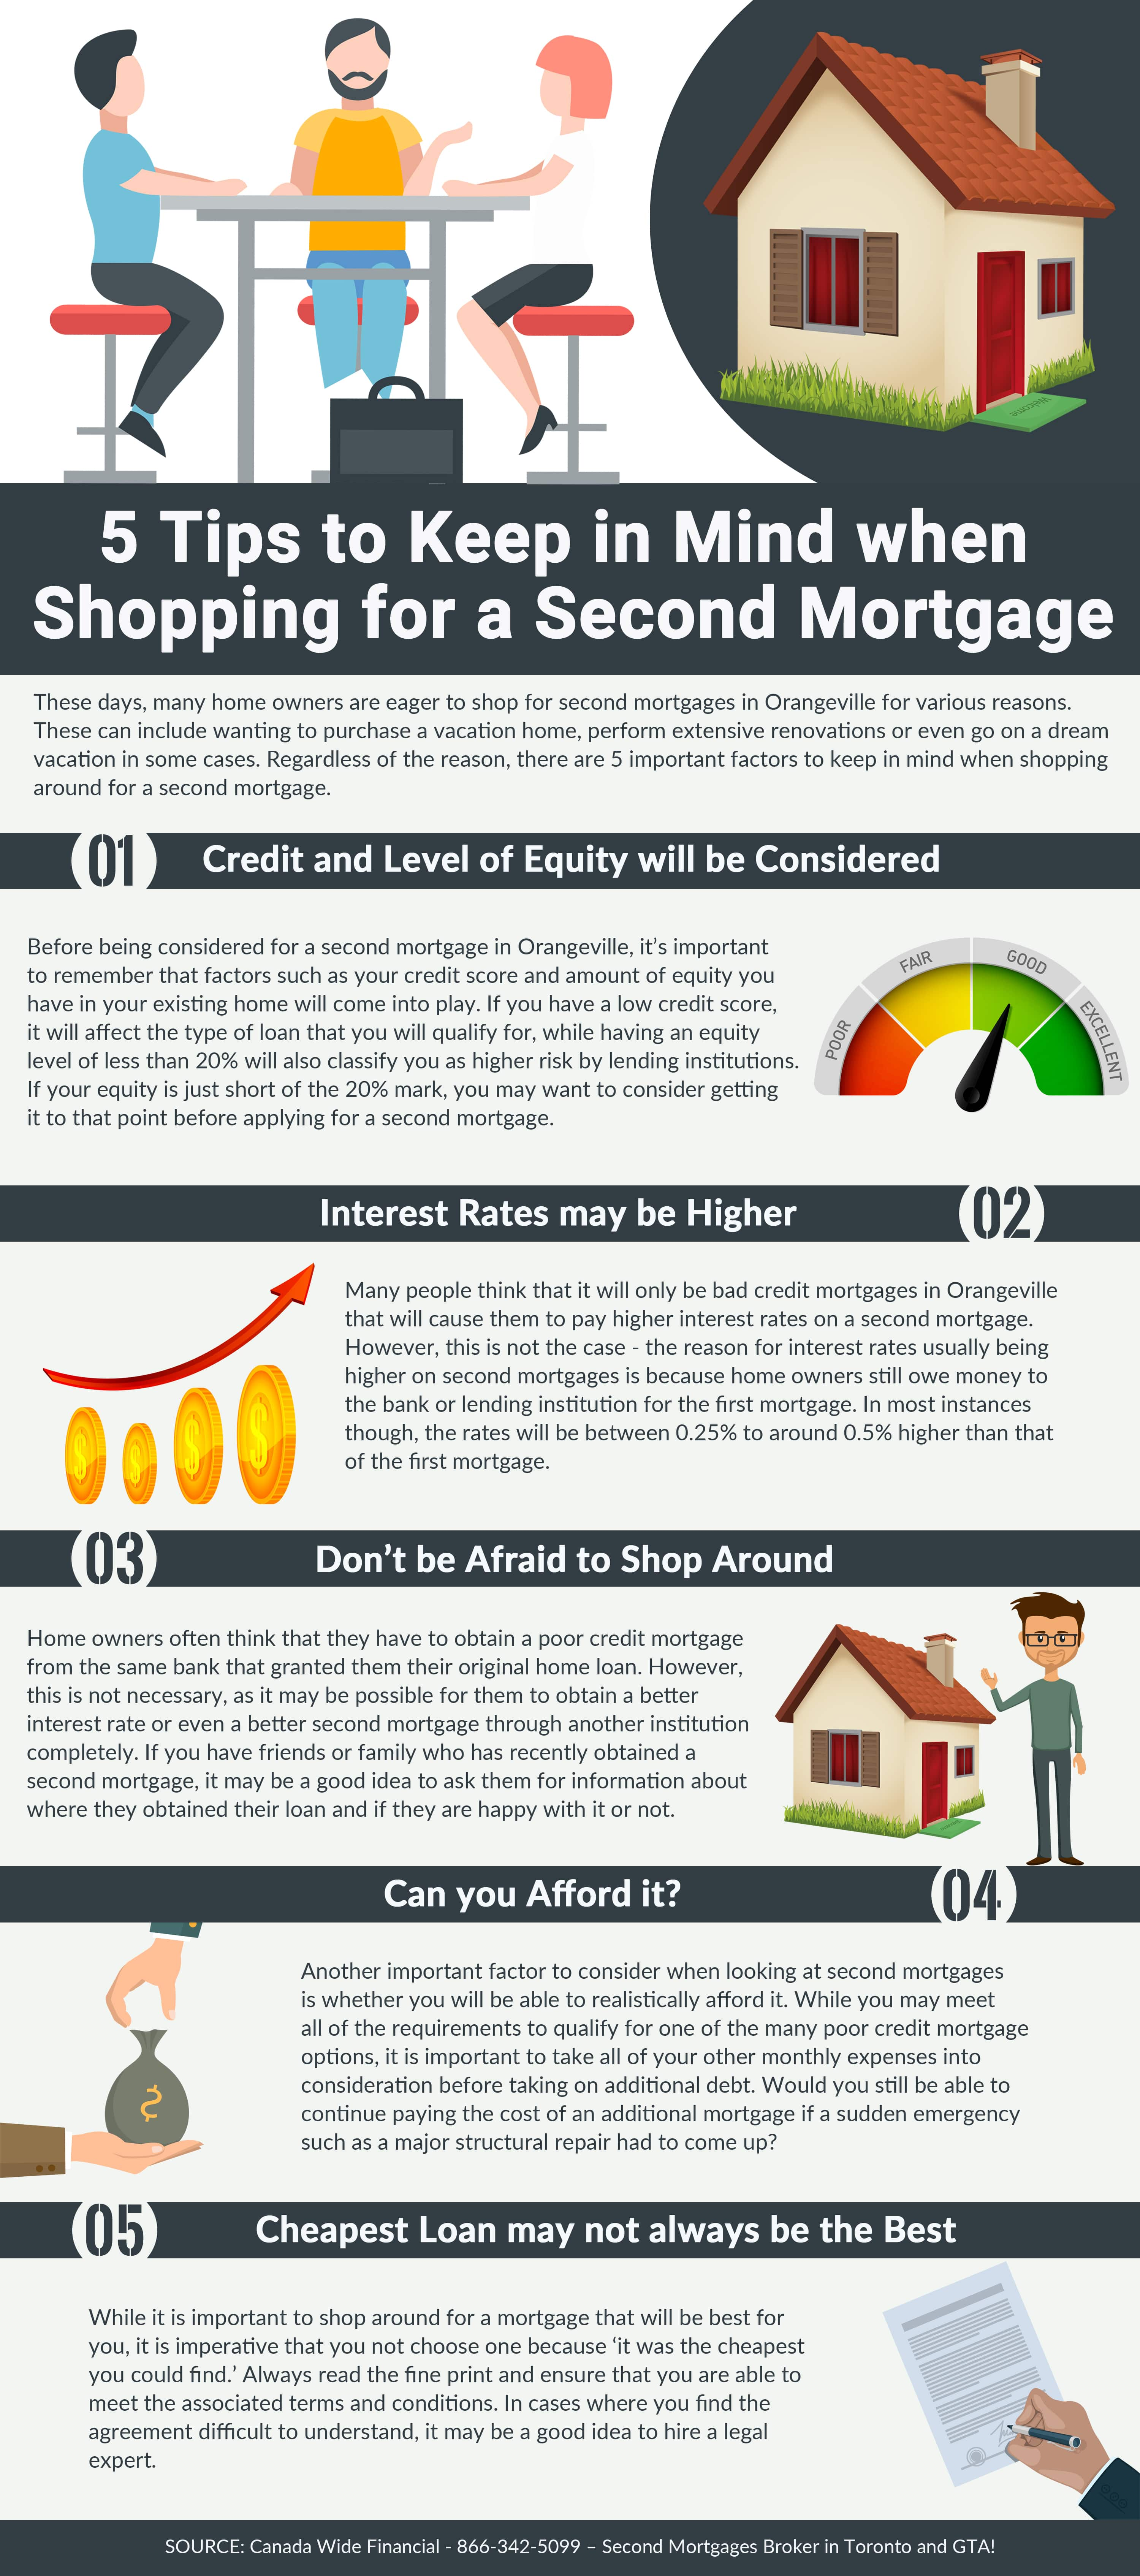 5 Tips to Keep in Mind when Shopping for a Second Mortgage - Infographic